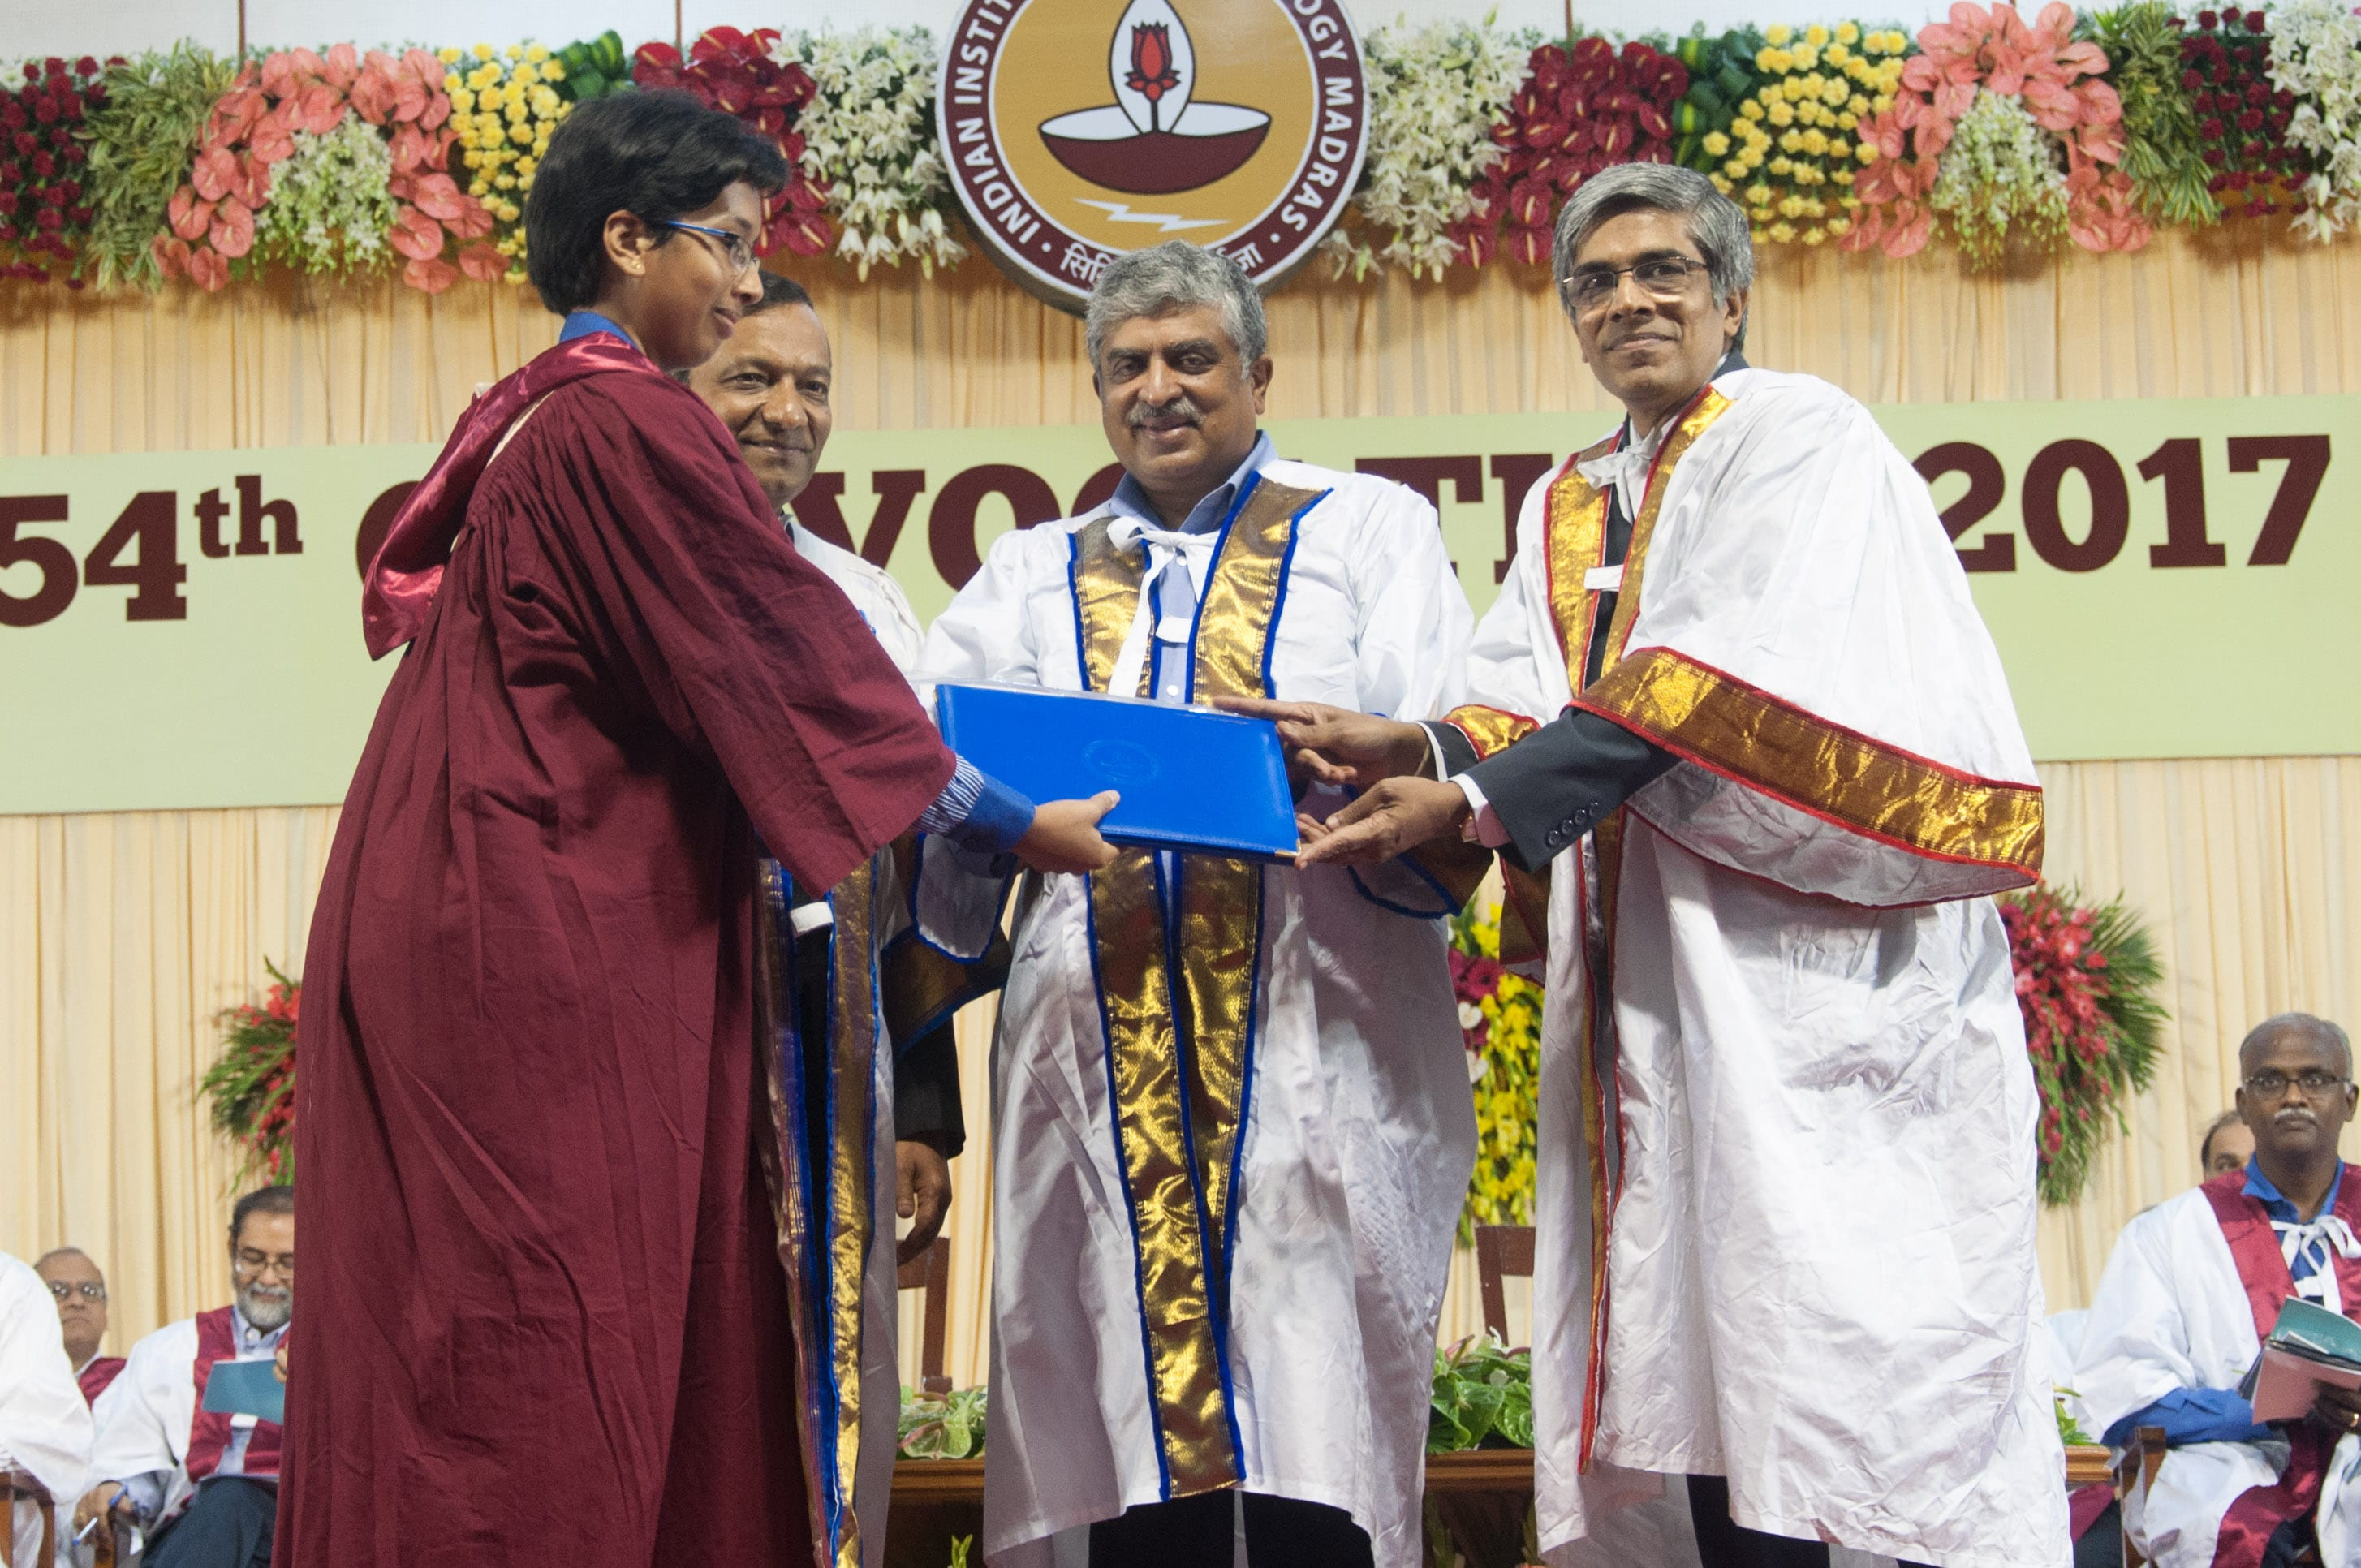 IIT Madras 54th Convocation: A total of 2,263 degrees were awarded this year